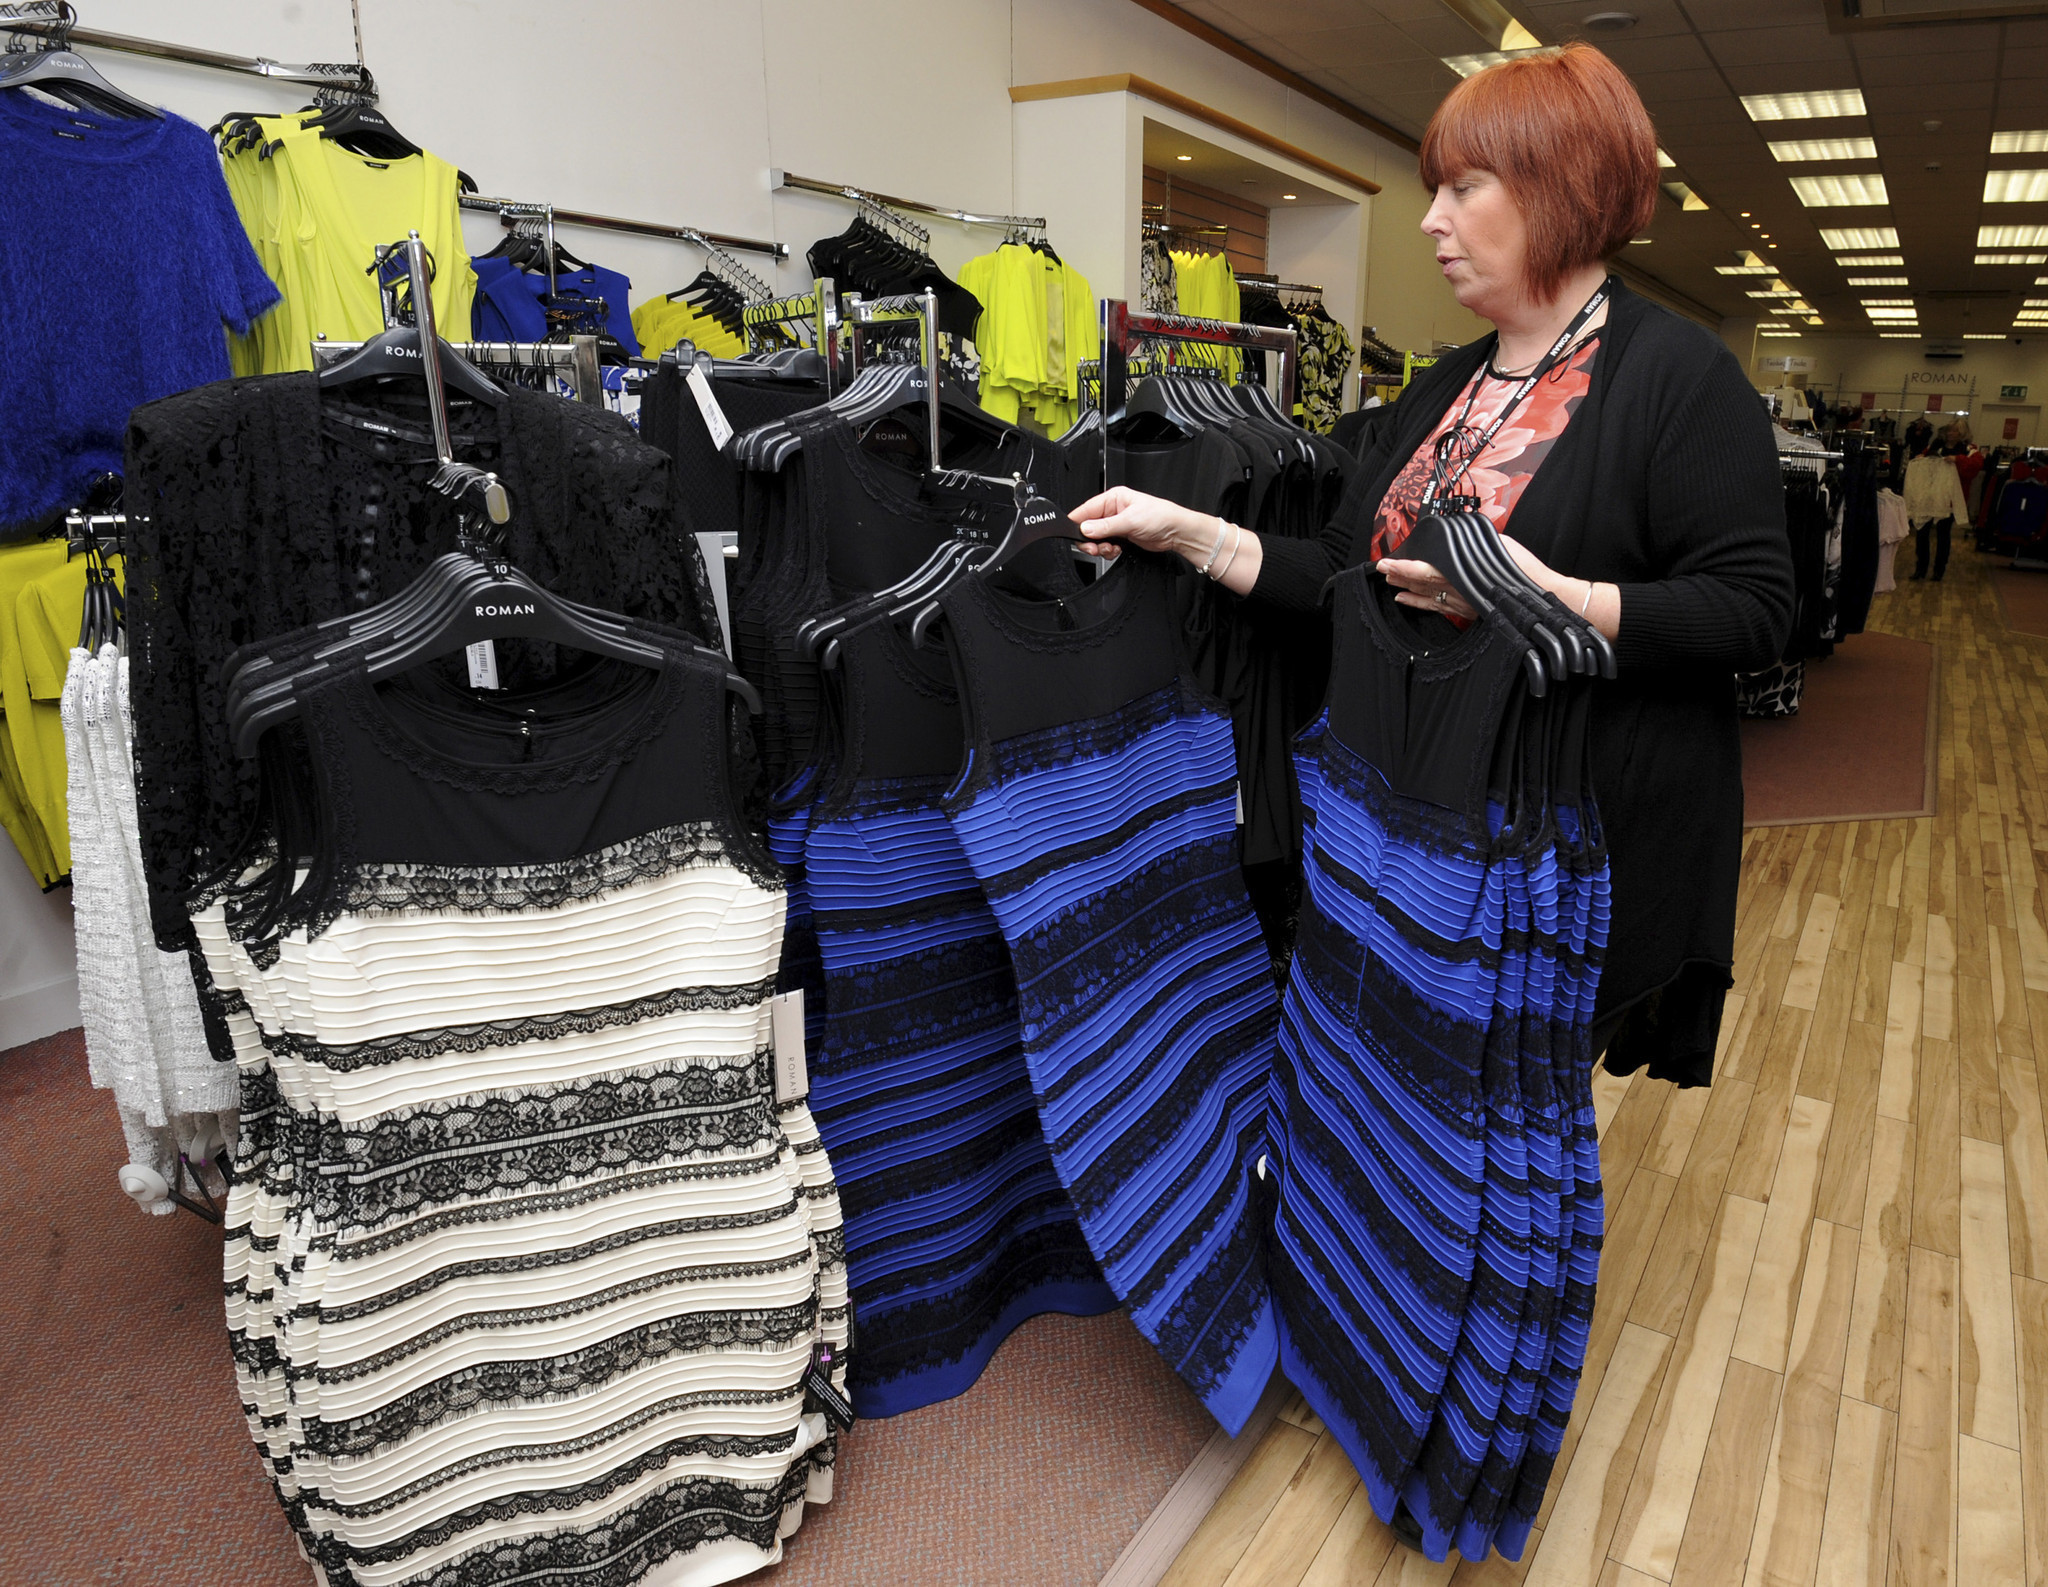 Dressmaker Seeing Green After Online Color Debate